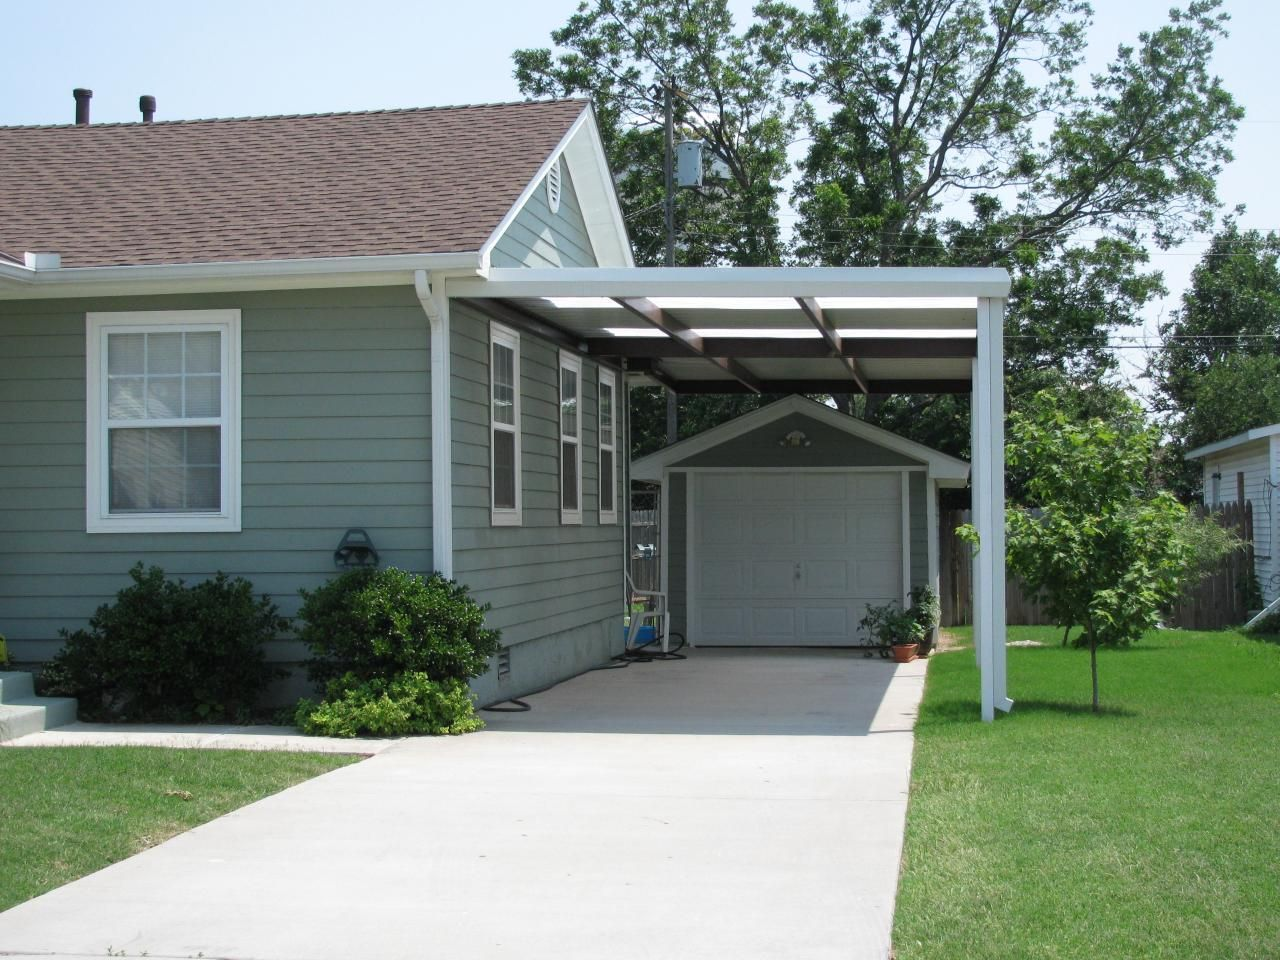 Single carport with skylights Midwest City c a r p o r t